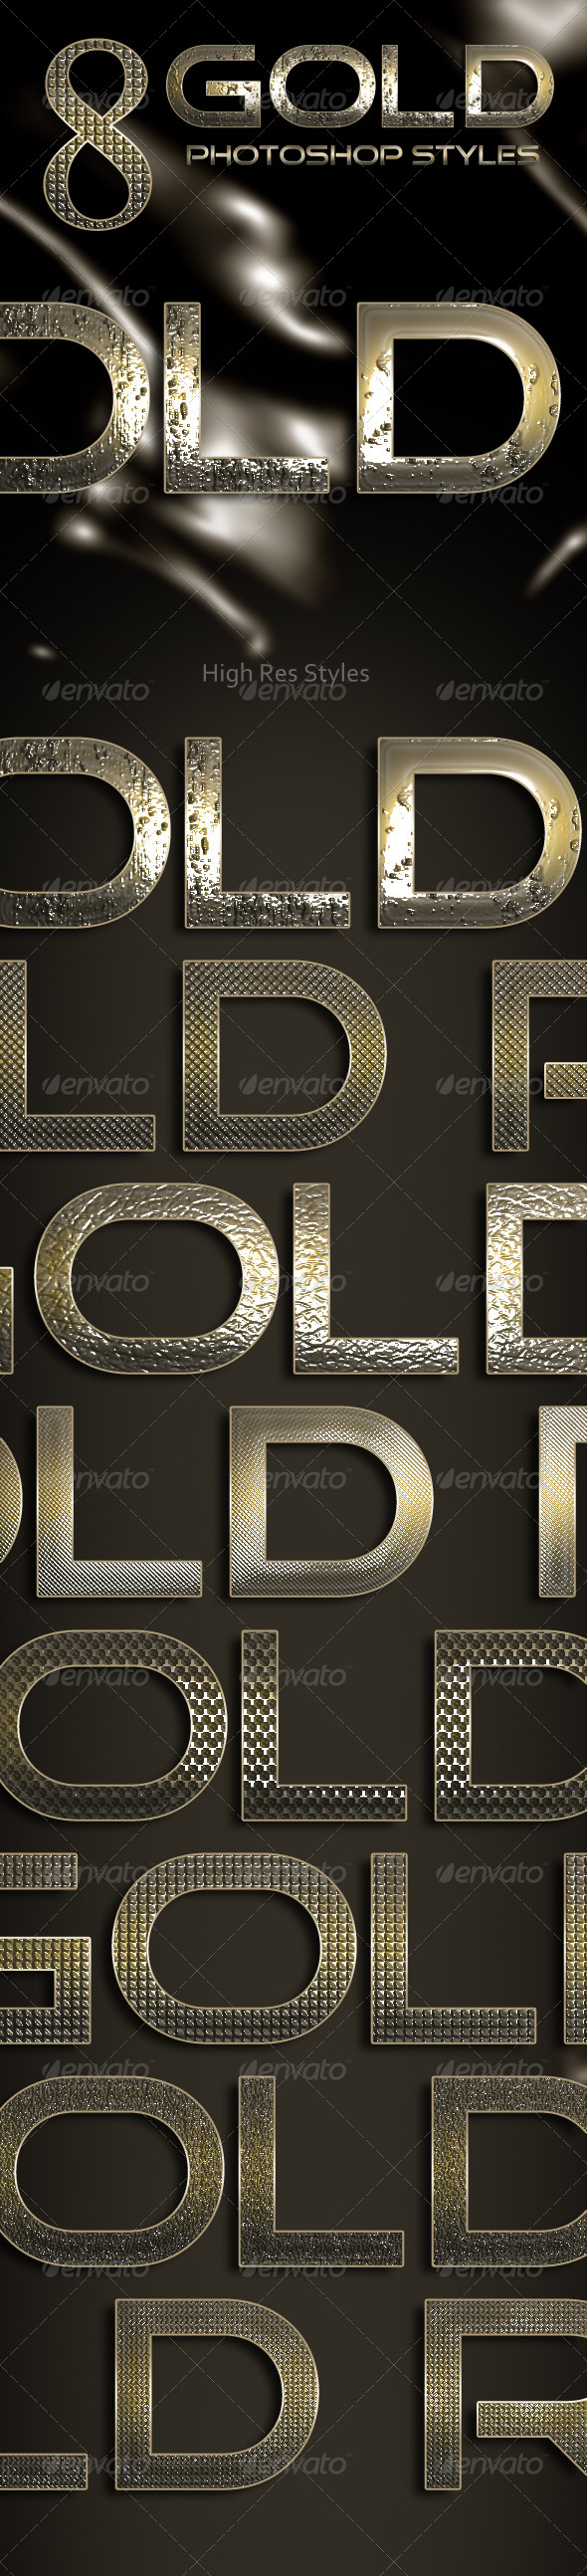 8 Gold Photoshop Styles - Text Effects Styles